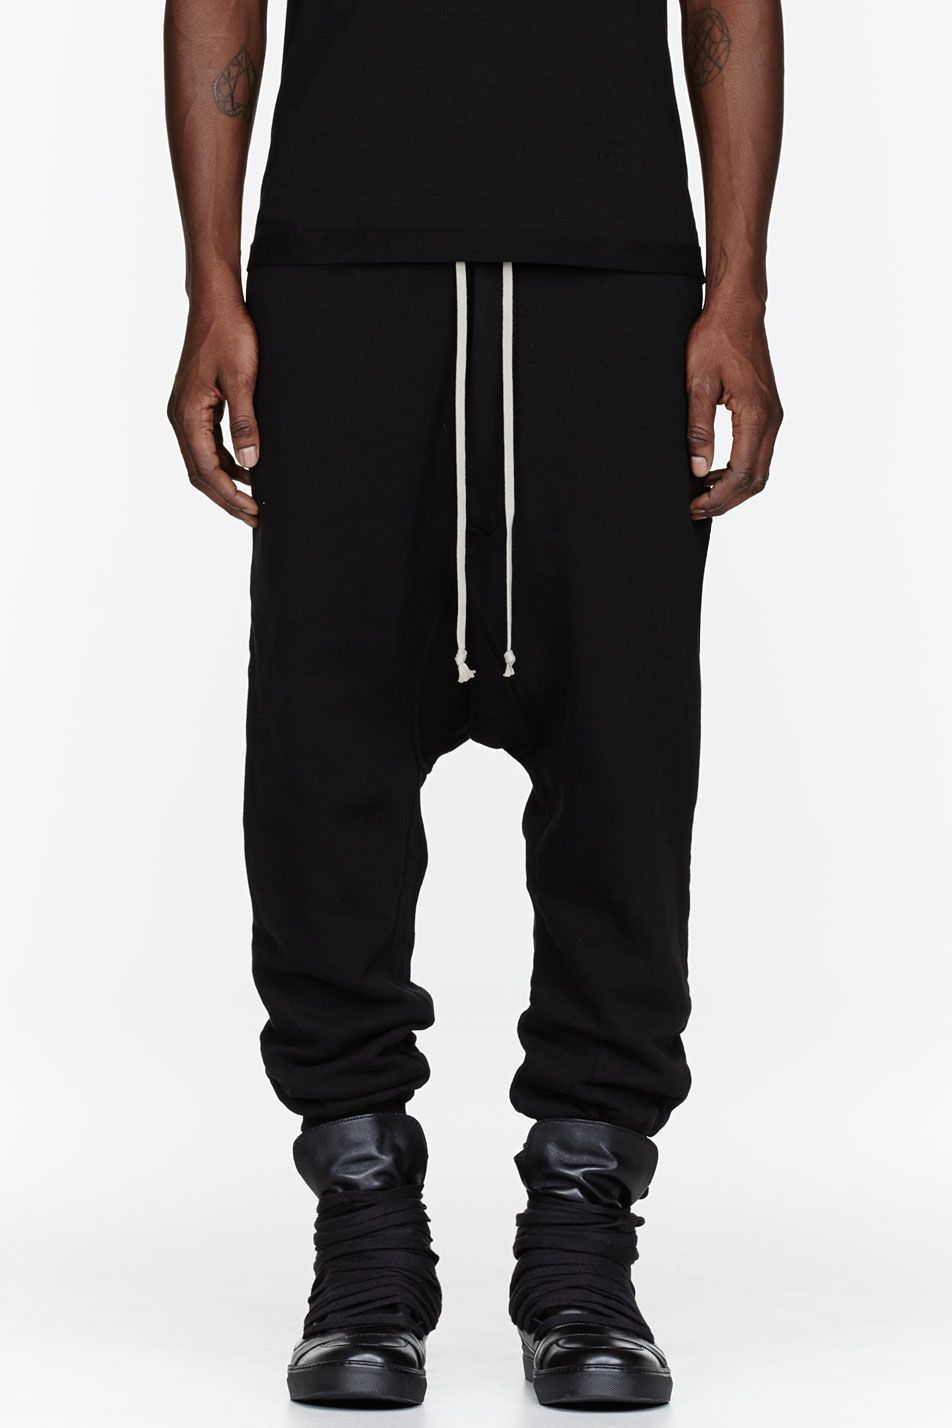 Clothing · Rick Owens DRKSHDW black harem lounge pants- ...